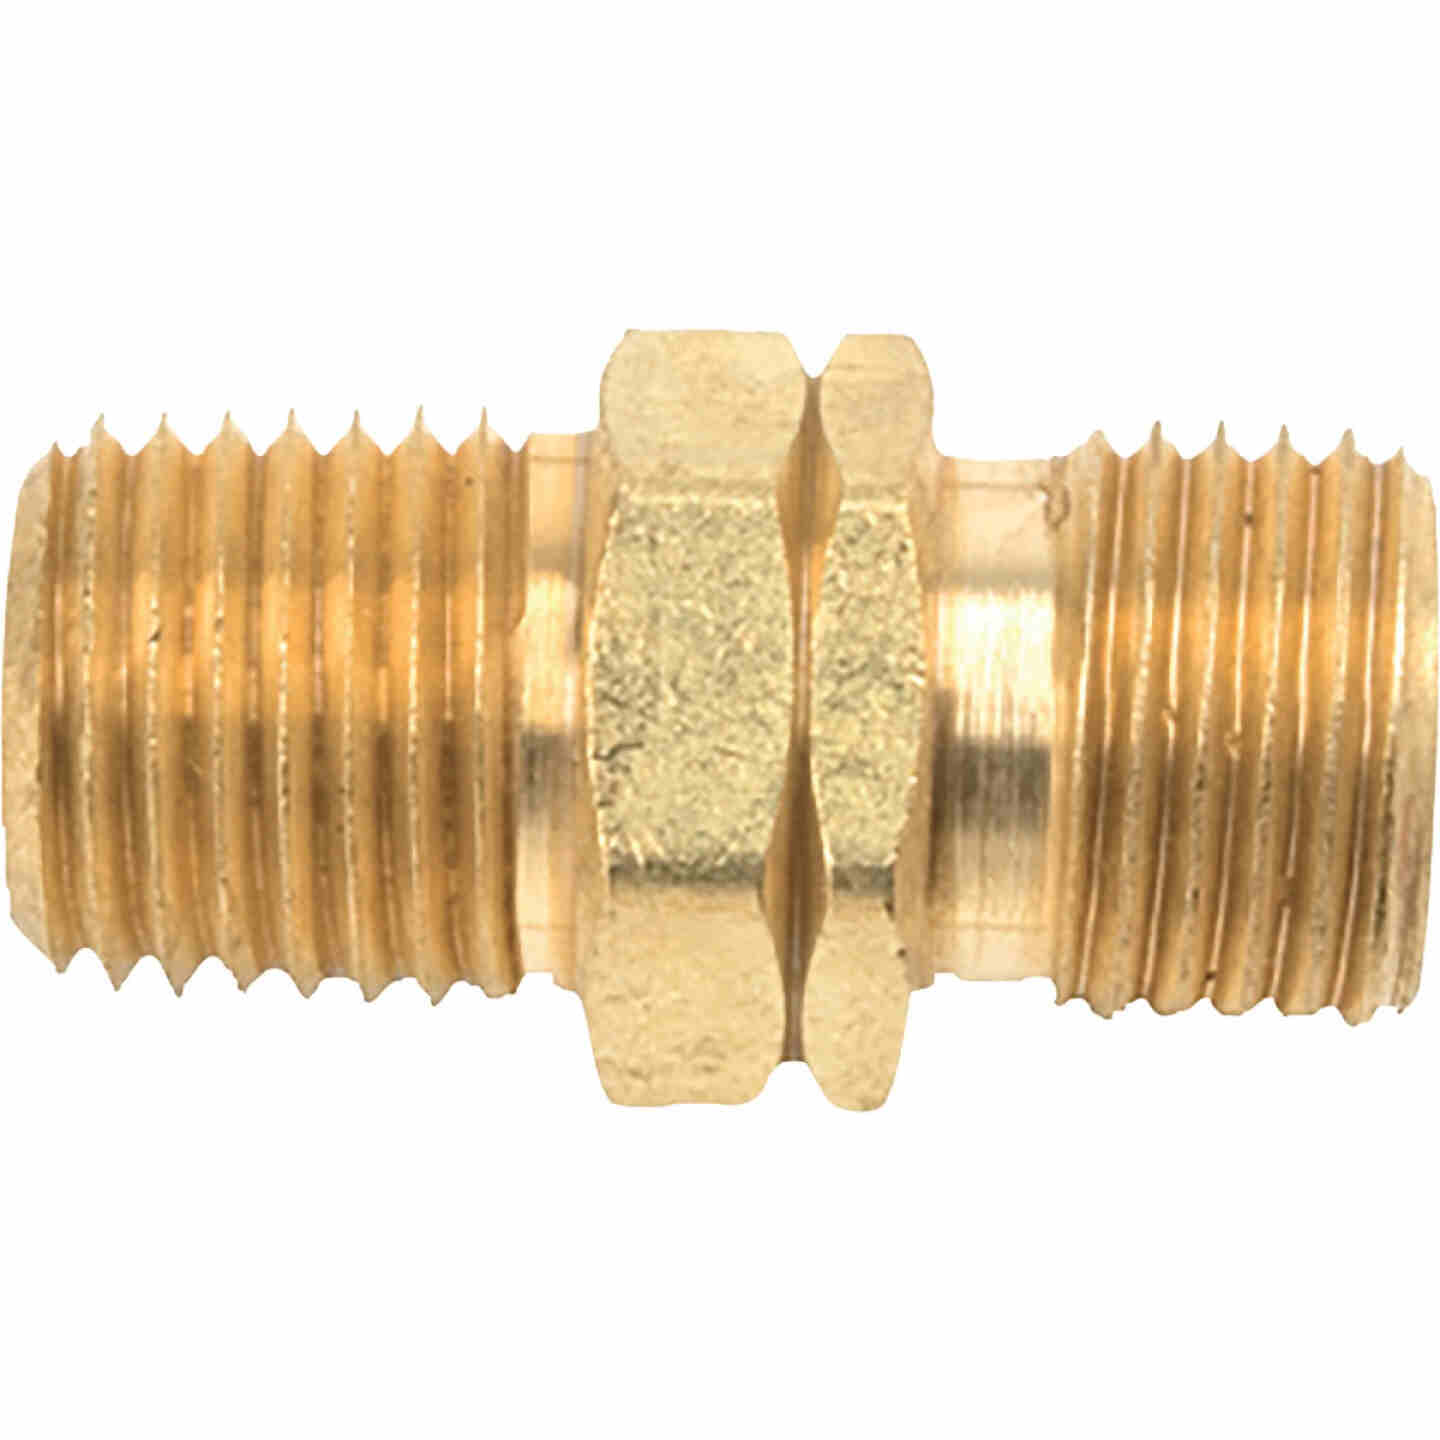 MR. HEATER 1/4 In. MPT x 9/16 In. LHMT Brass Male Pipe Fitting Image 1